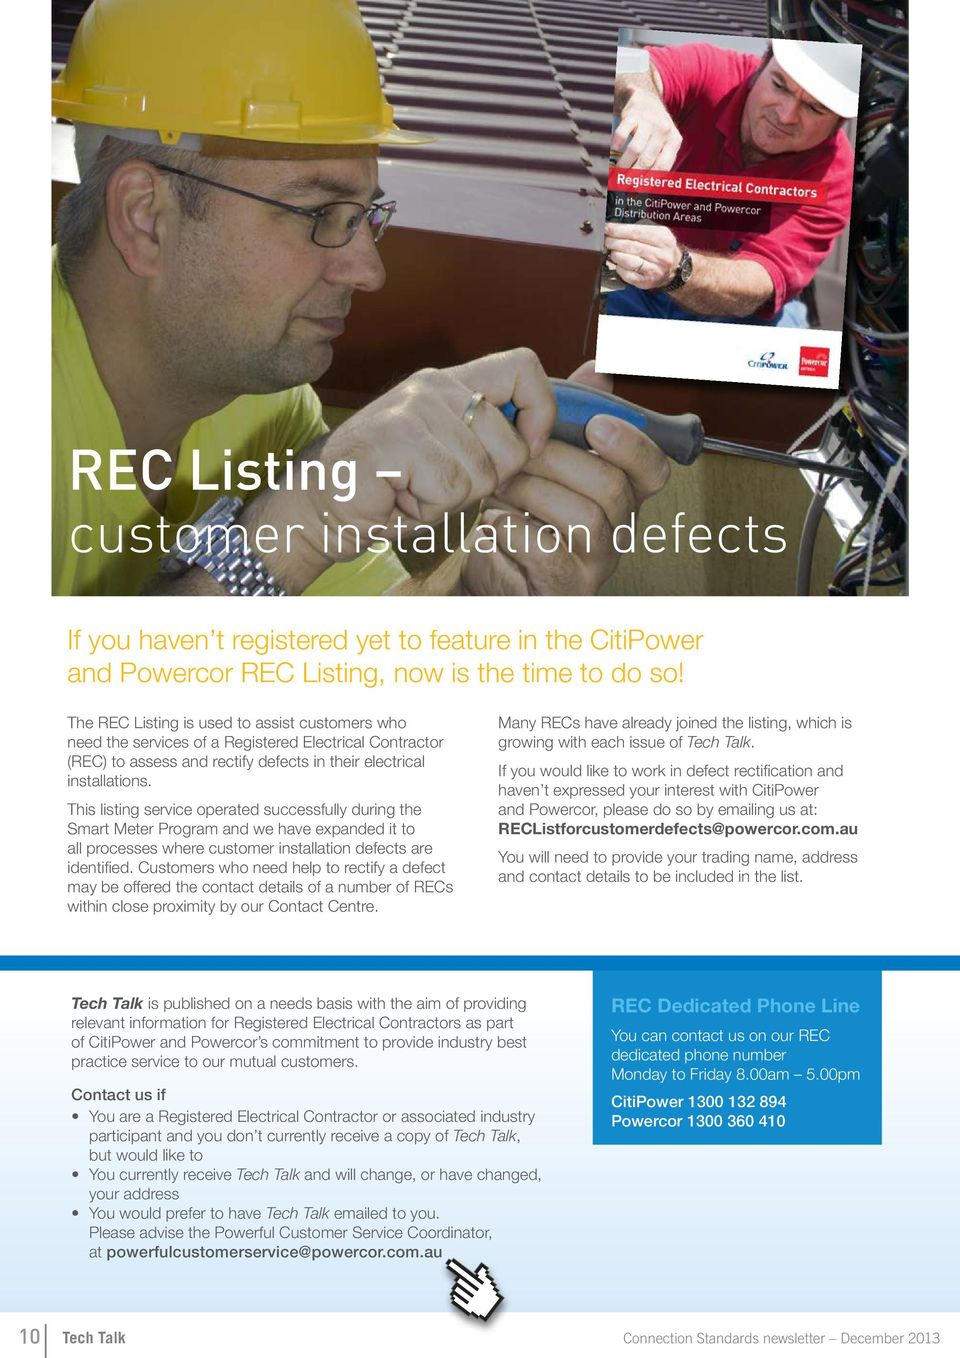 This listing service operated successfully during the Smart Meter Program and we have expanded it to all processes where customer installation defects are identified.